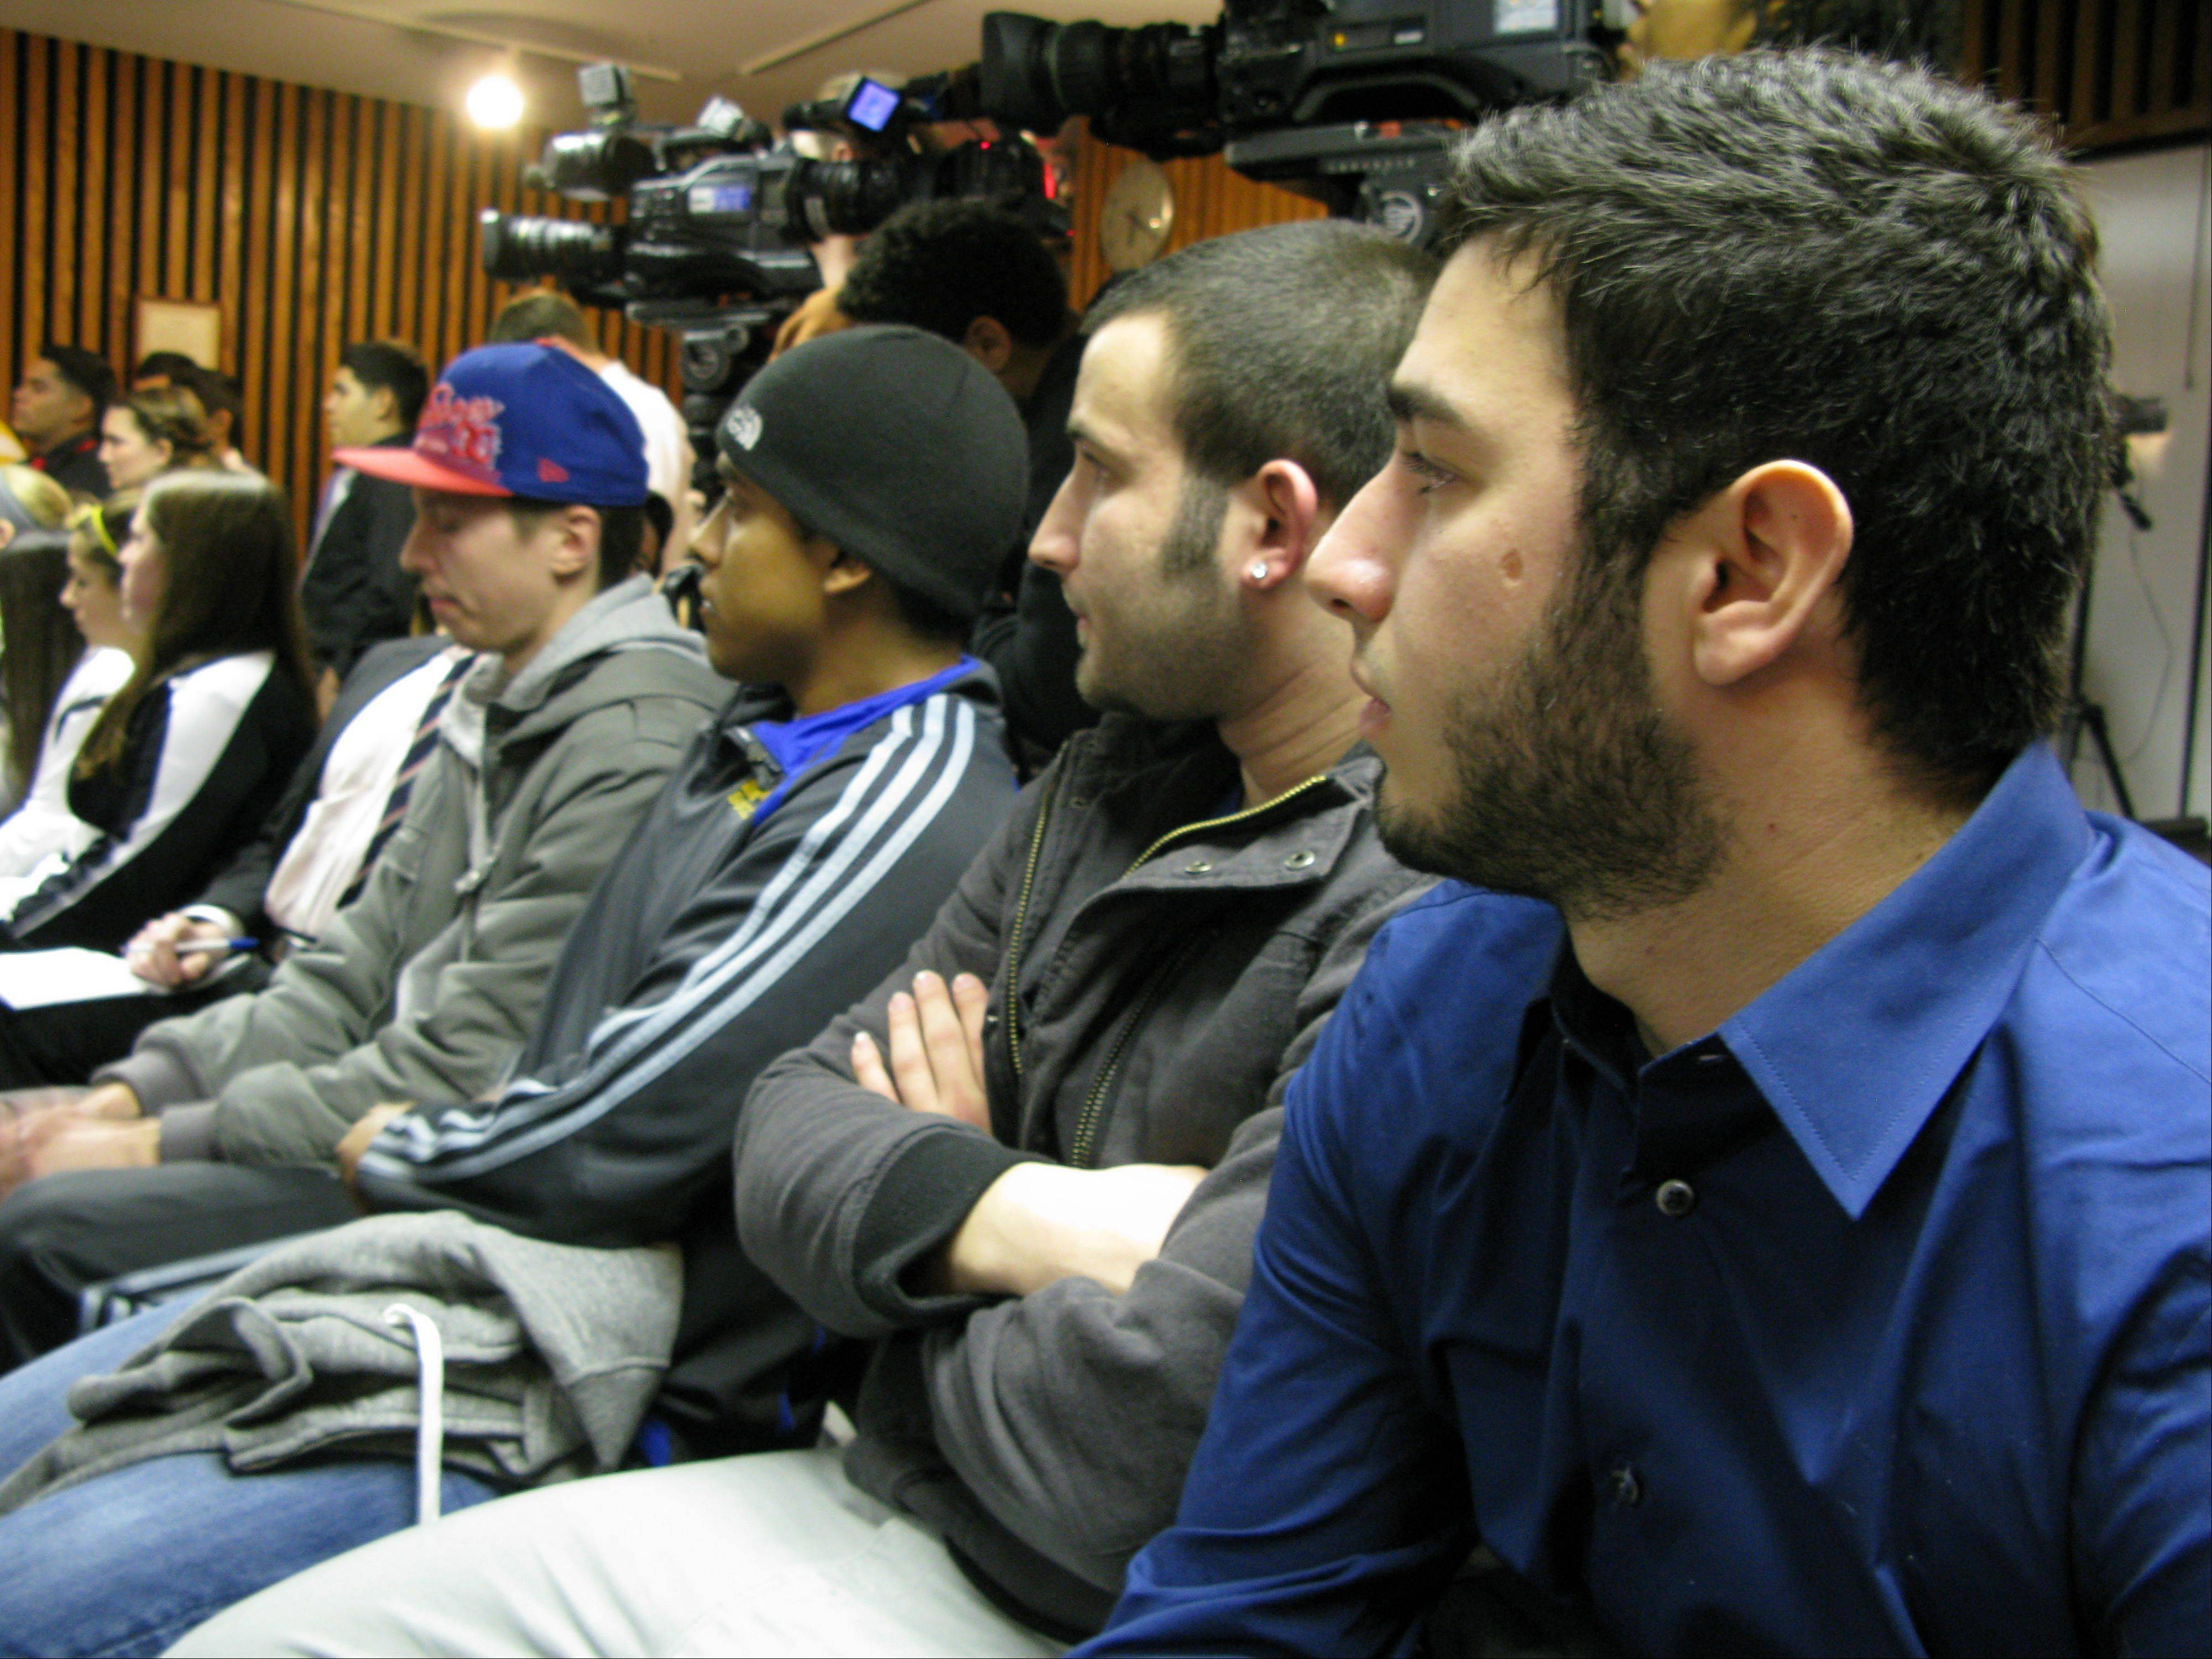 Dozens of former and current Maine West High School soccer players, including Joey Ruffolo, at right, voiced their support Wednesday night for head boys varsity soccer coach Michael Divincenzo, who was fired from his job after a hazing scandal at the high school.